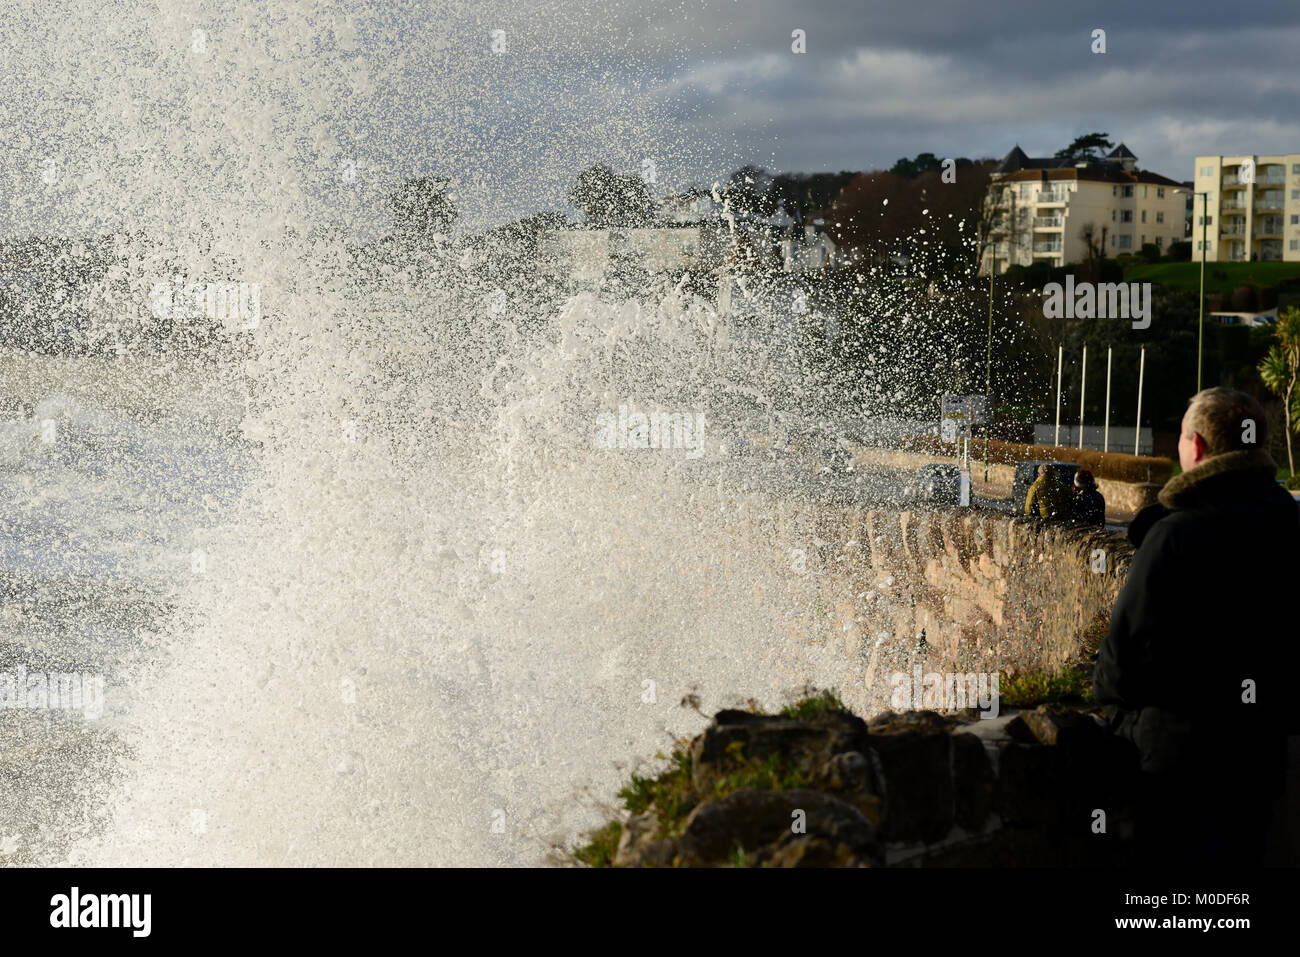 People watching from a safe location as waves crash against the sea wall during a stormy high tide at Torquay. - Stock Image